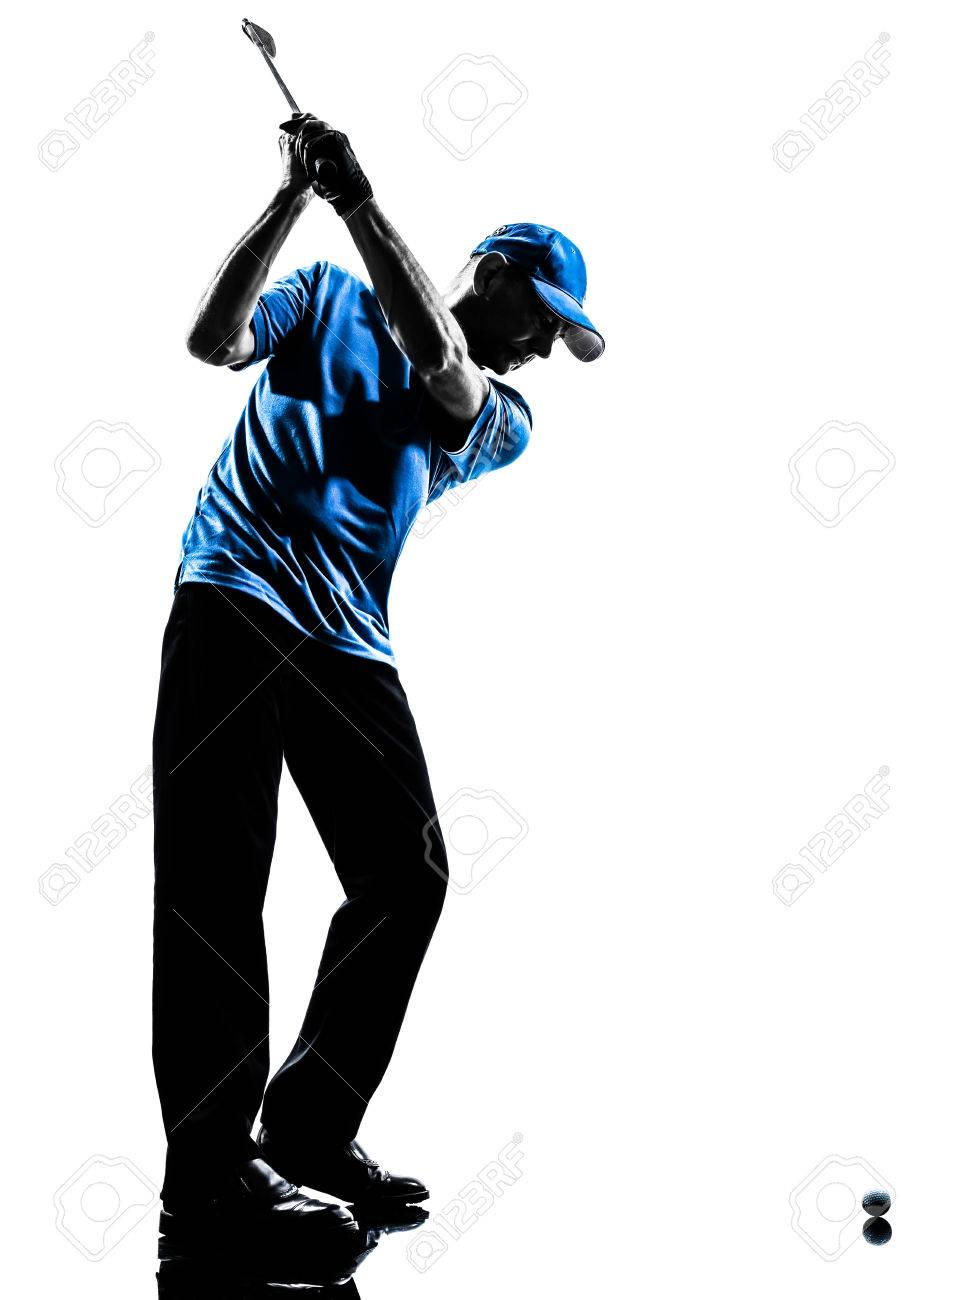 one man golfer golfing golf swing in silhouette studio isolated on white background stock photo